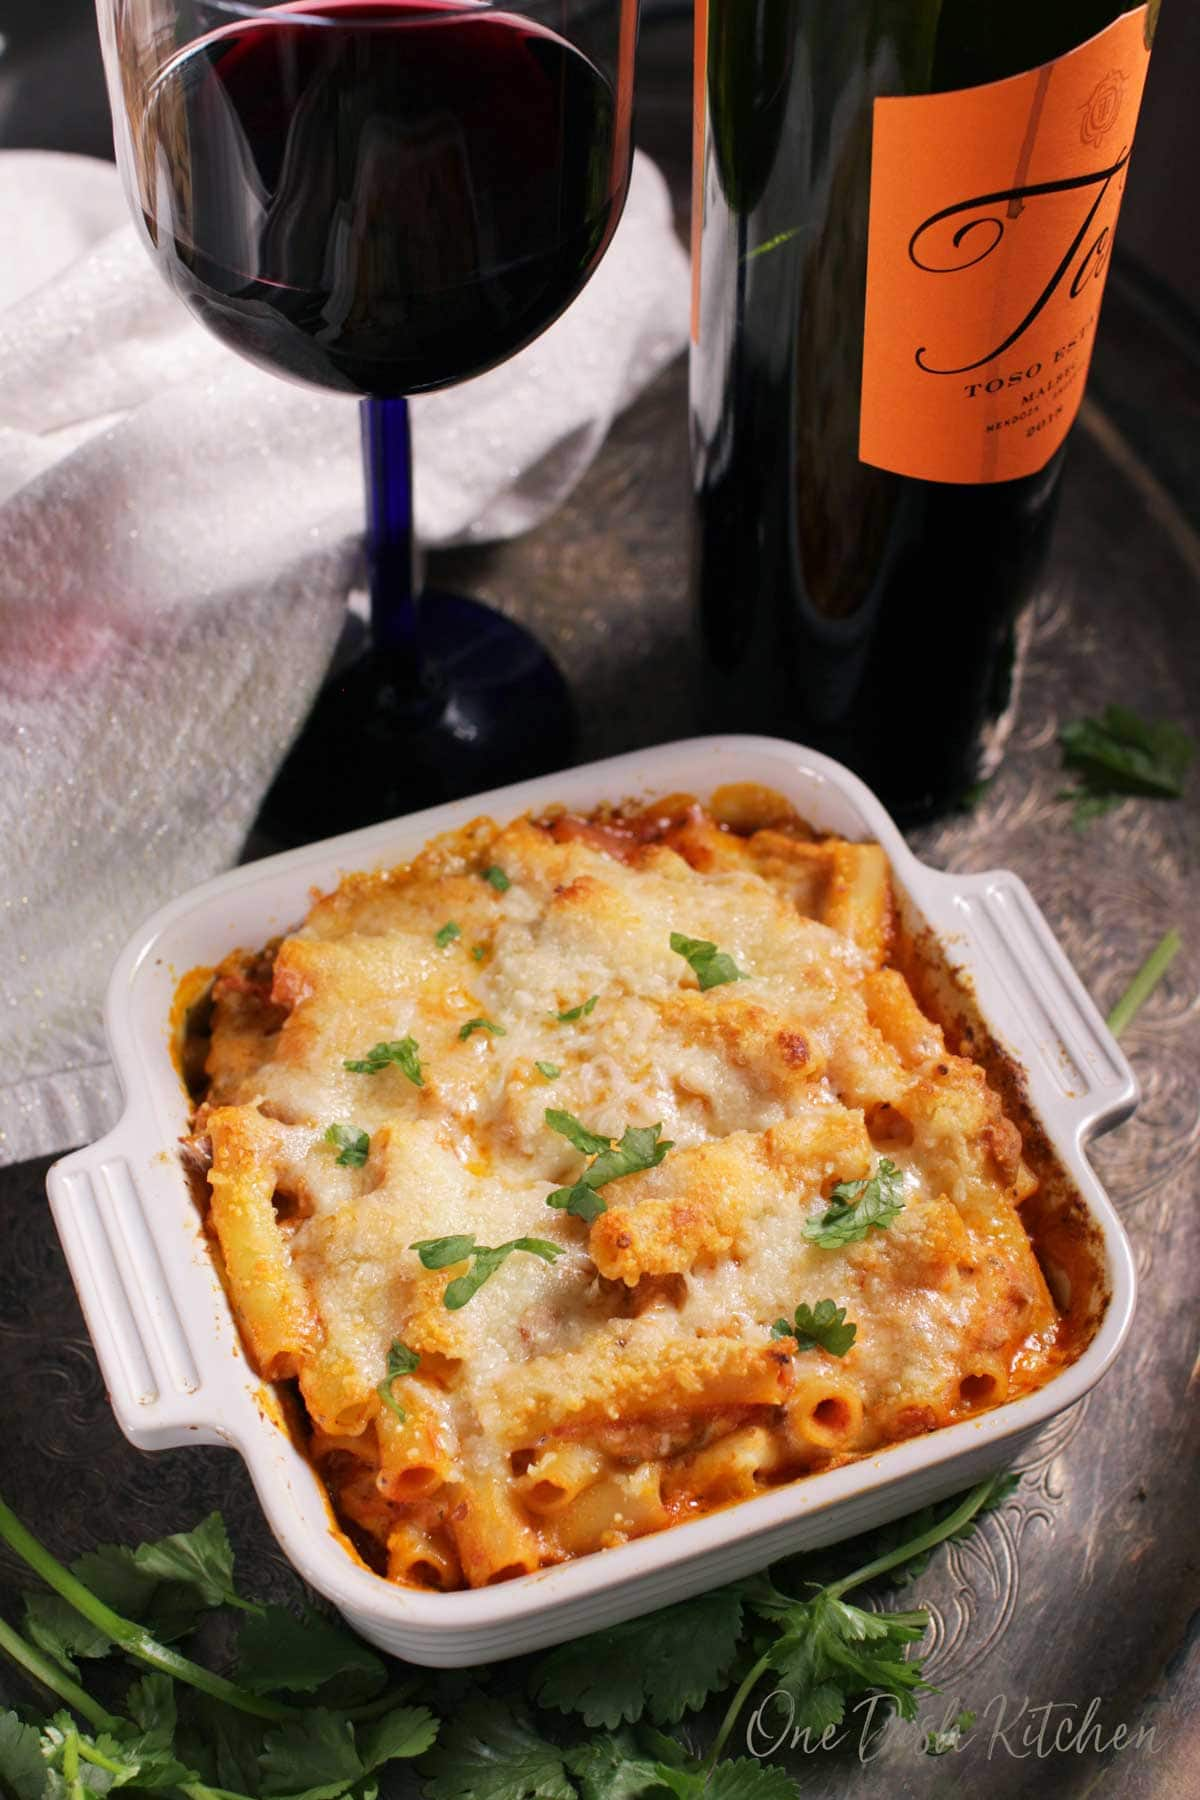 An overhead view of a small baked ziti casserole baked in a small baking dish on a metal tray with a glass and bottle of red wine and parsley